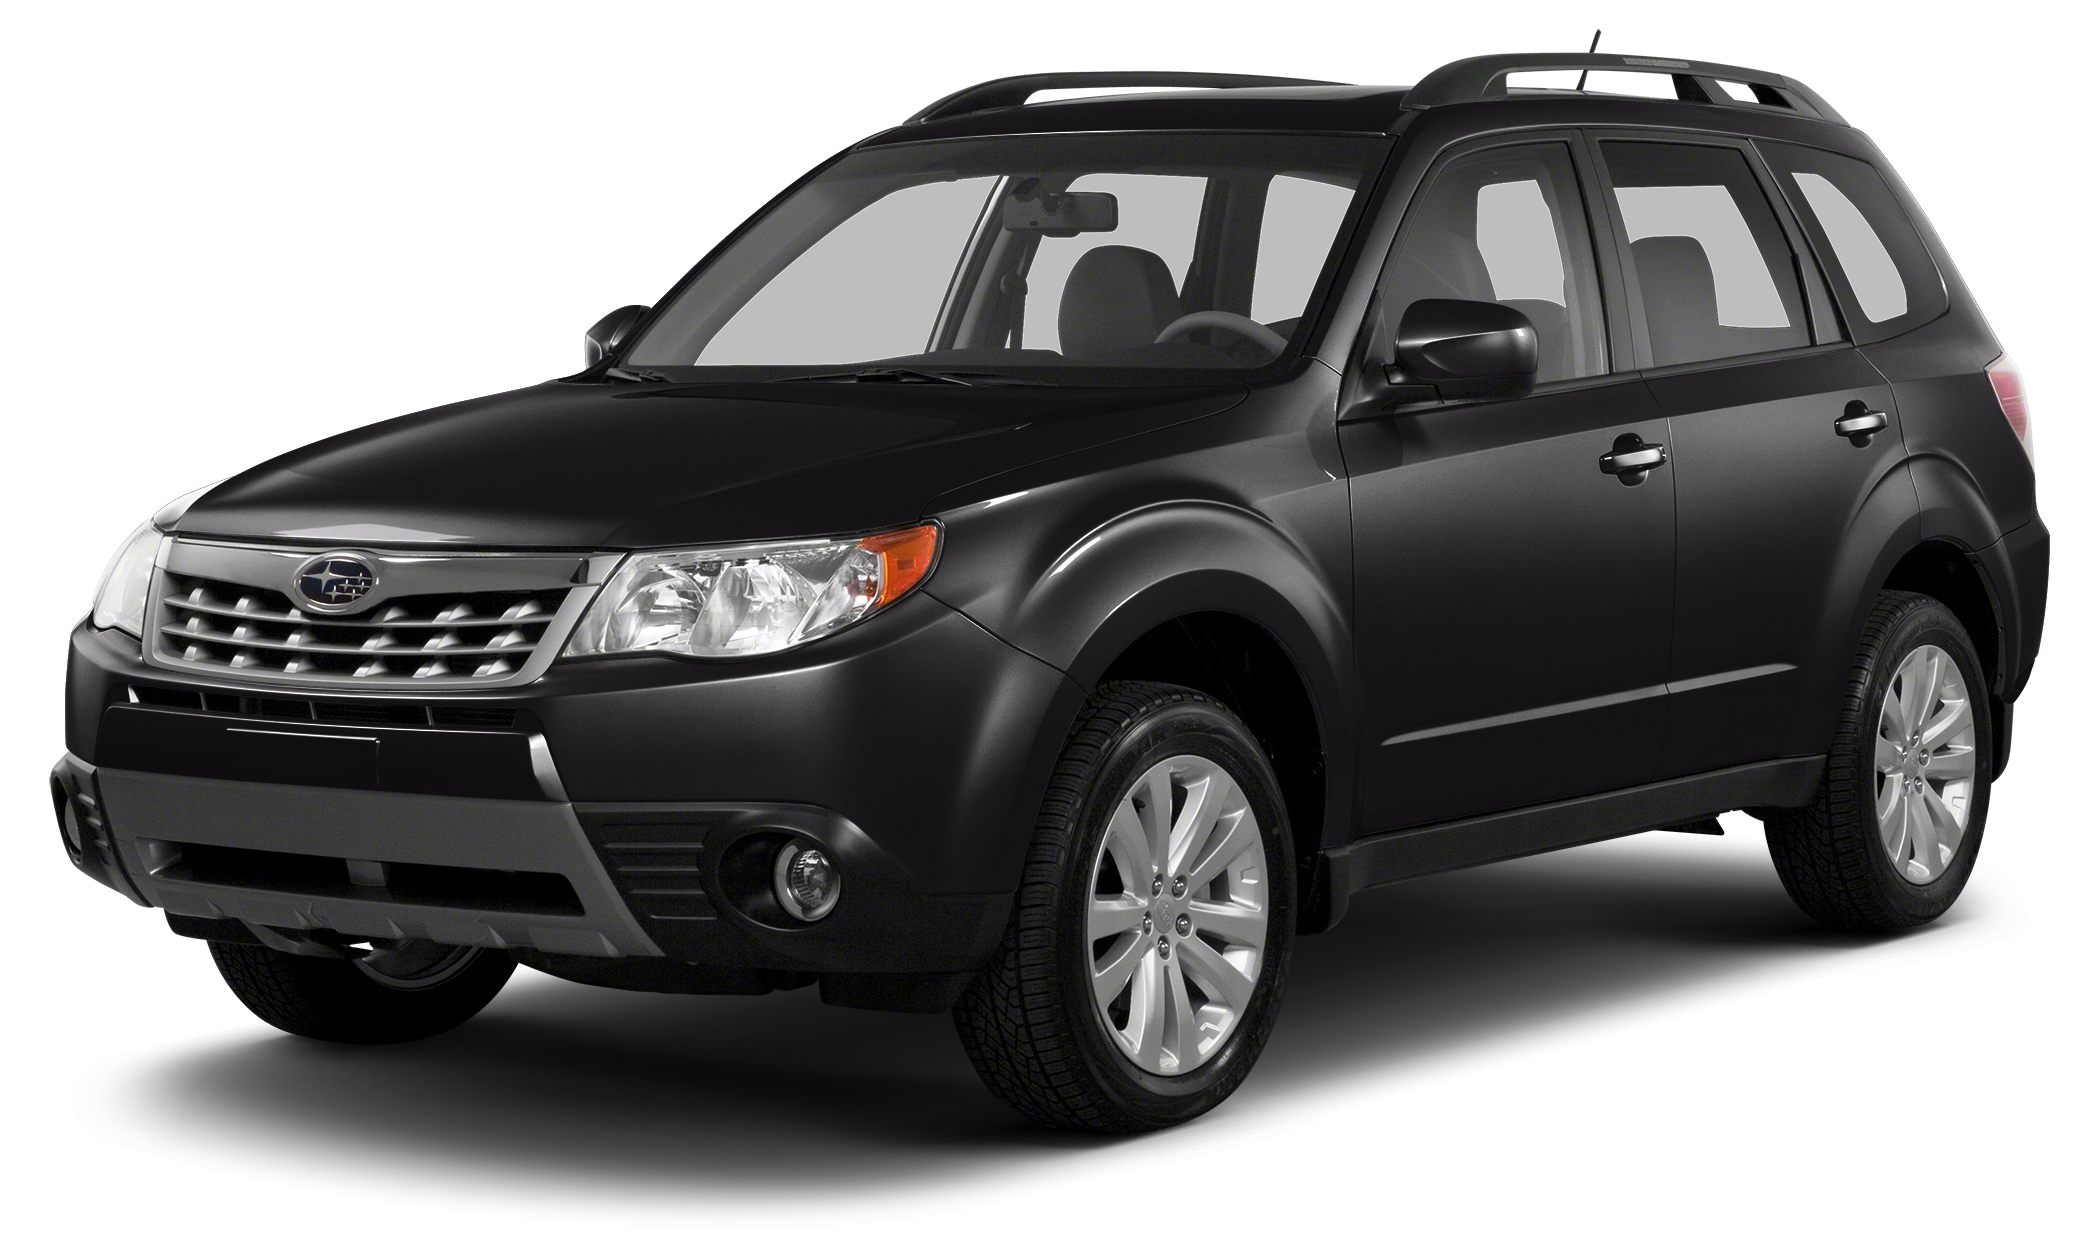 2013 Subaru Forester 25X Savor the satisfaction of safety in any condition with this AWD Subaru F